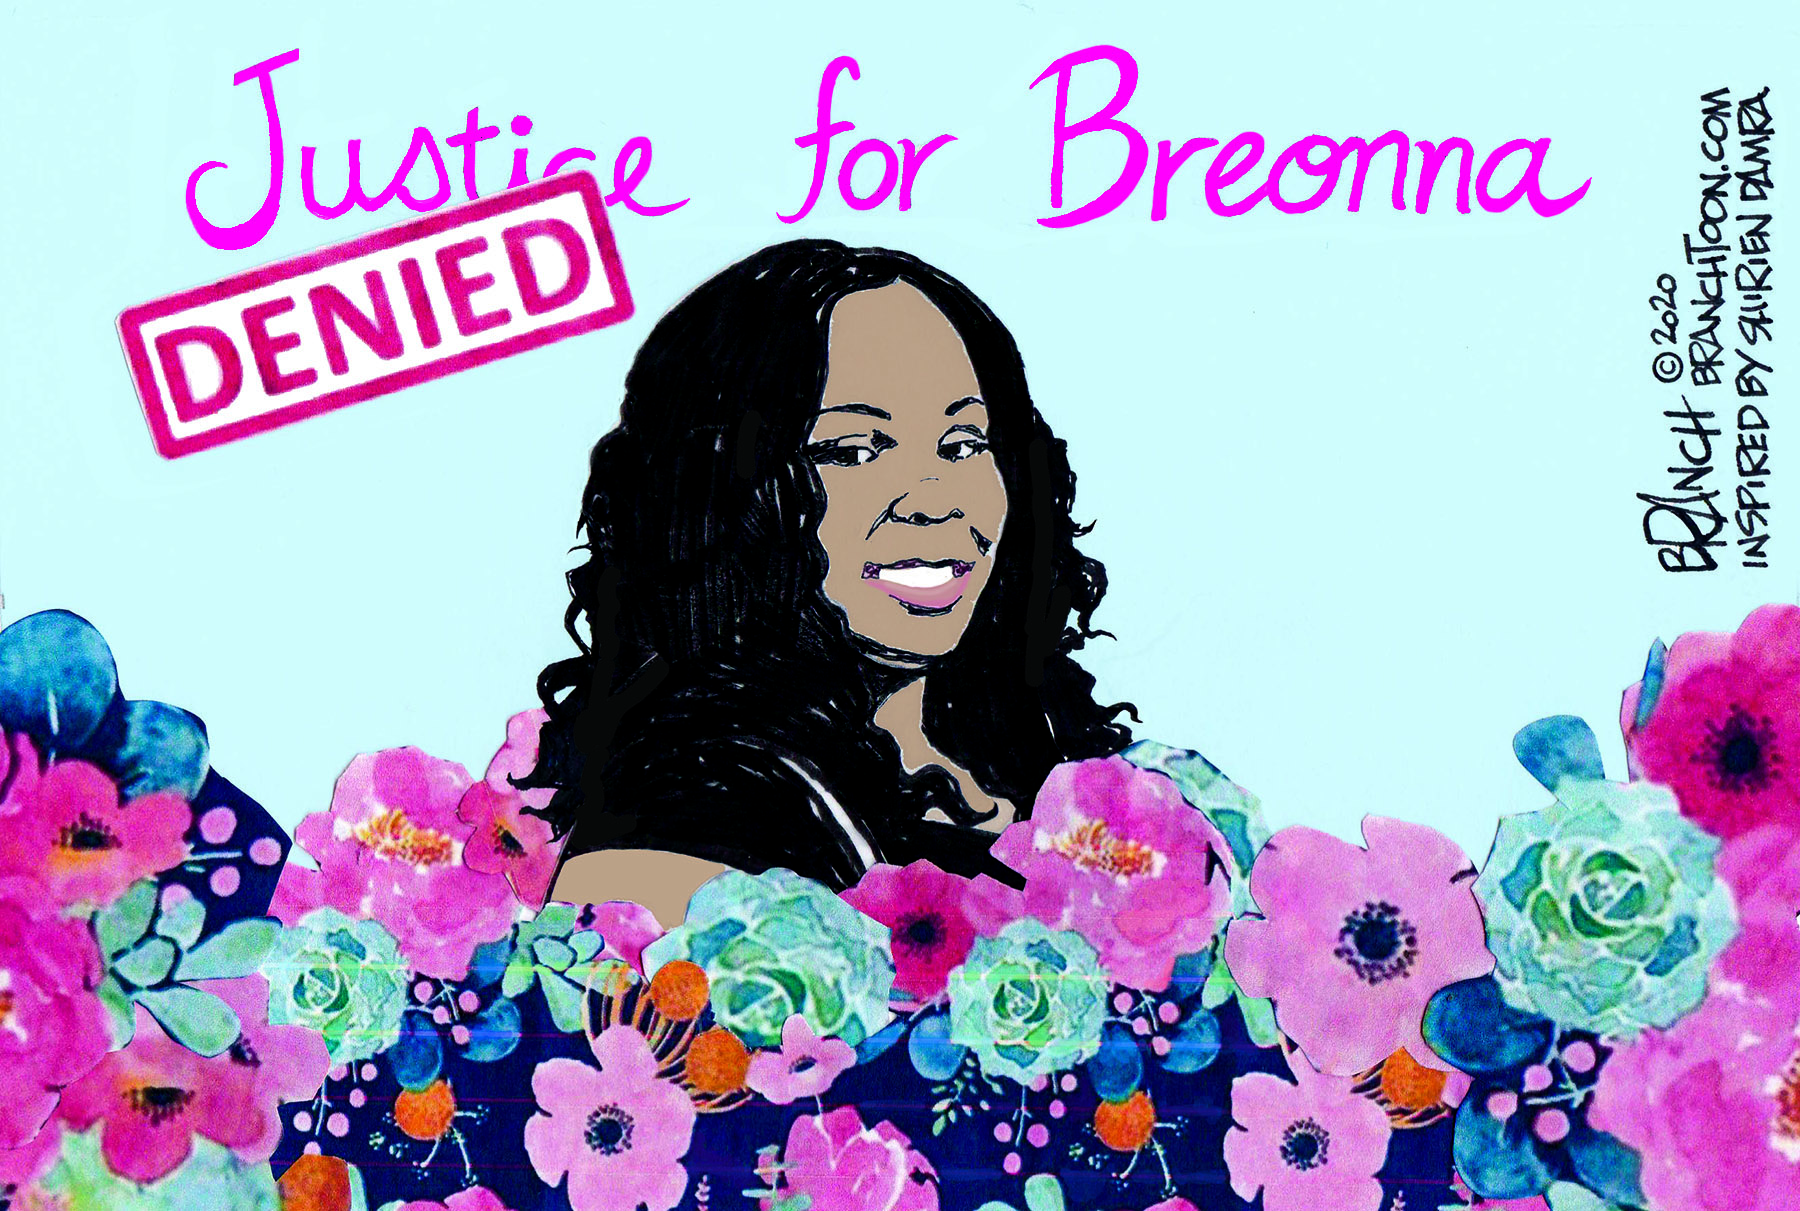 092320-breonna-justice-denied-web